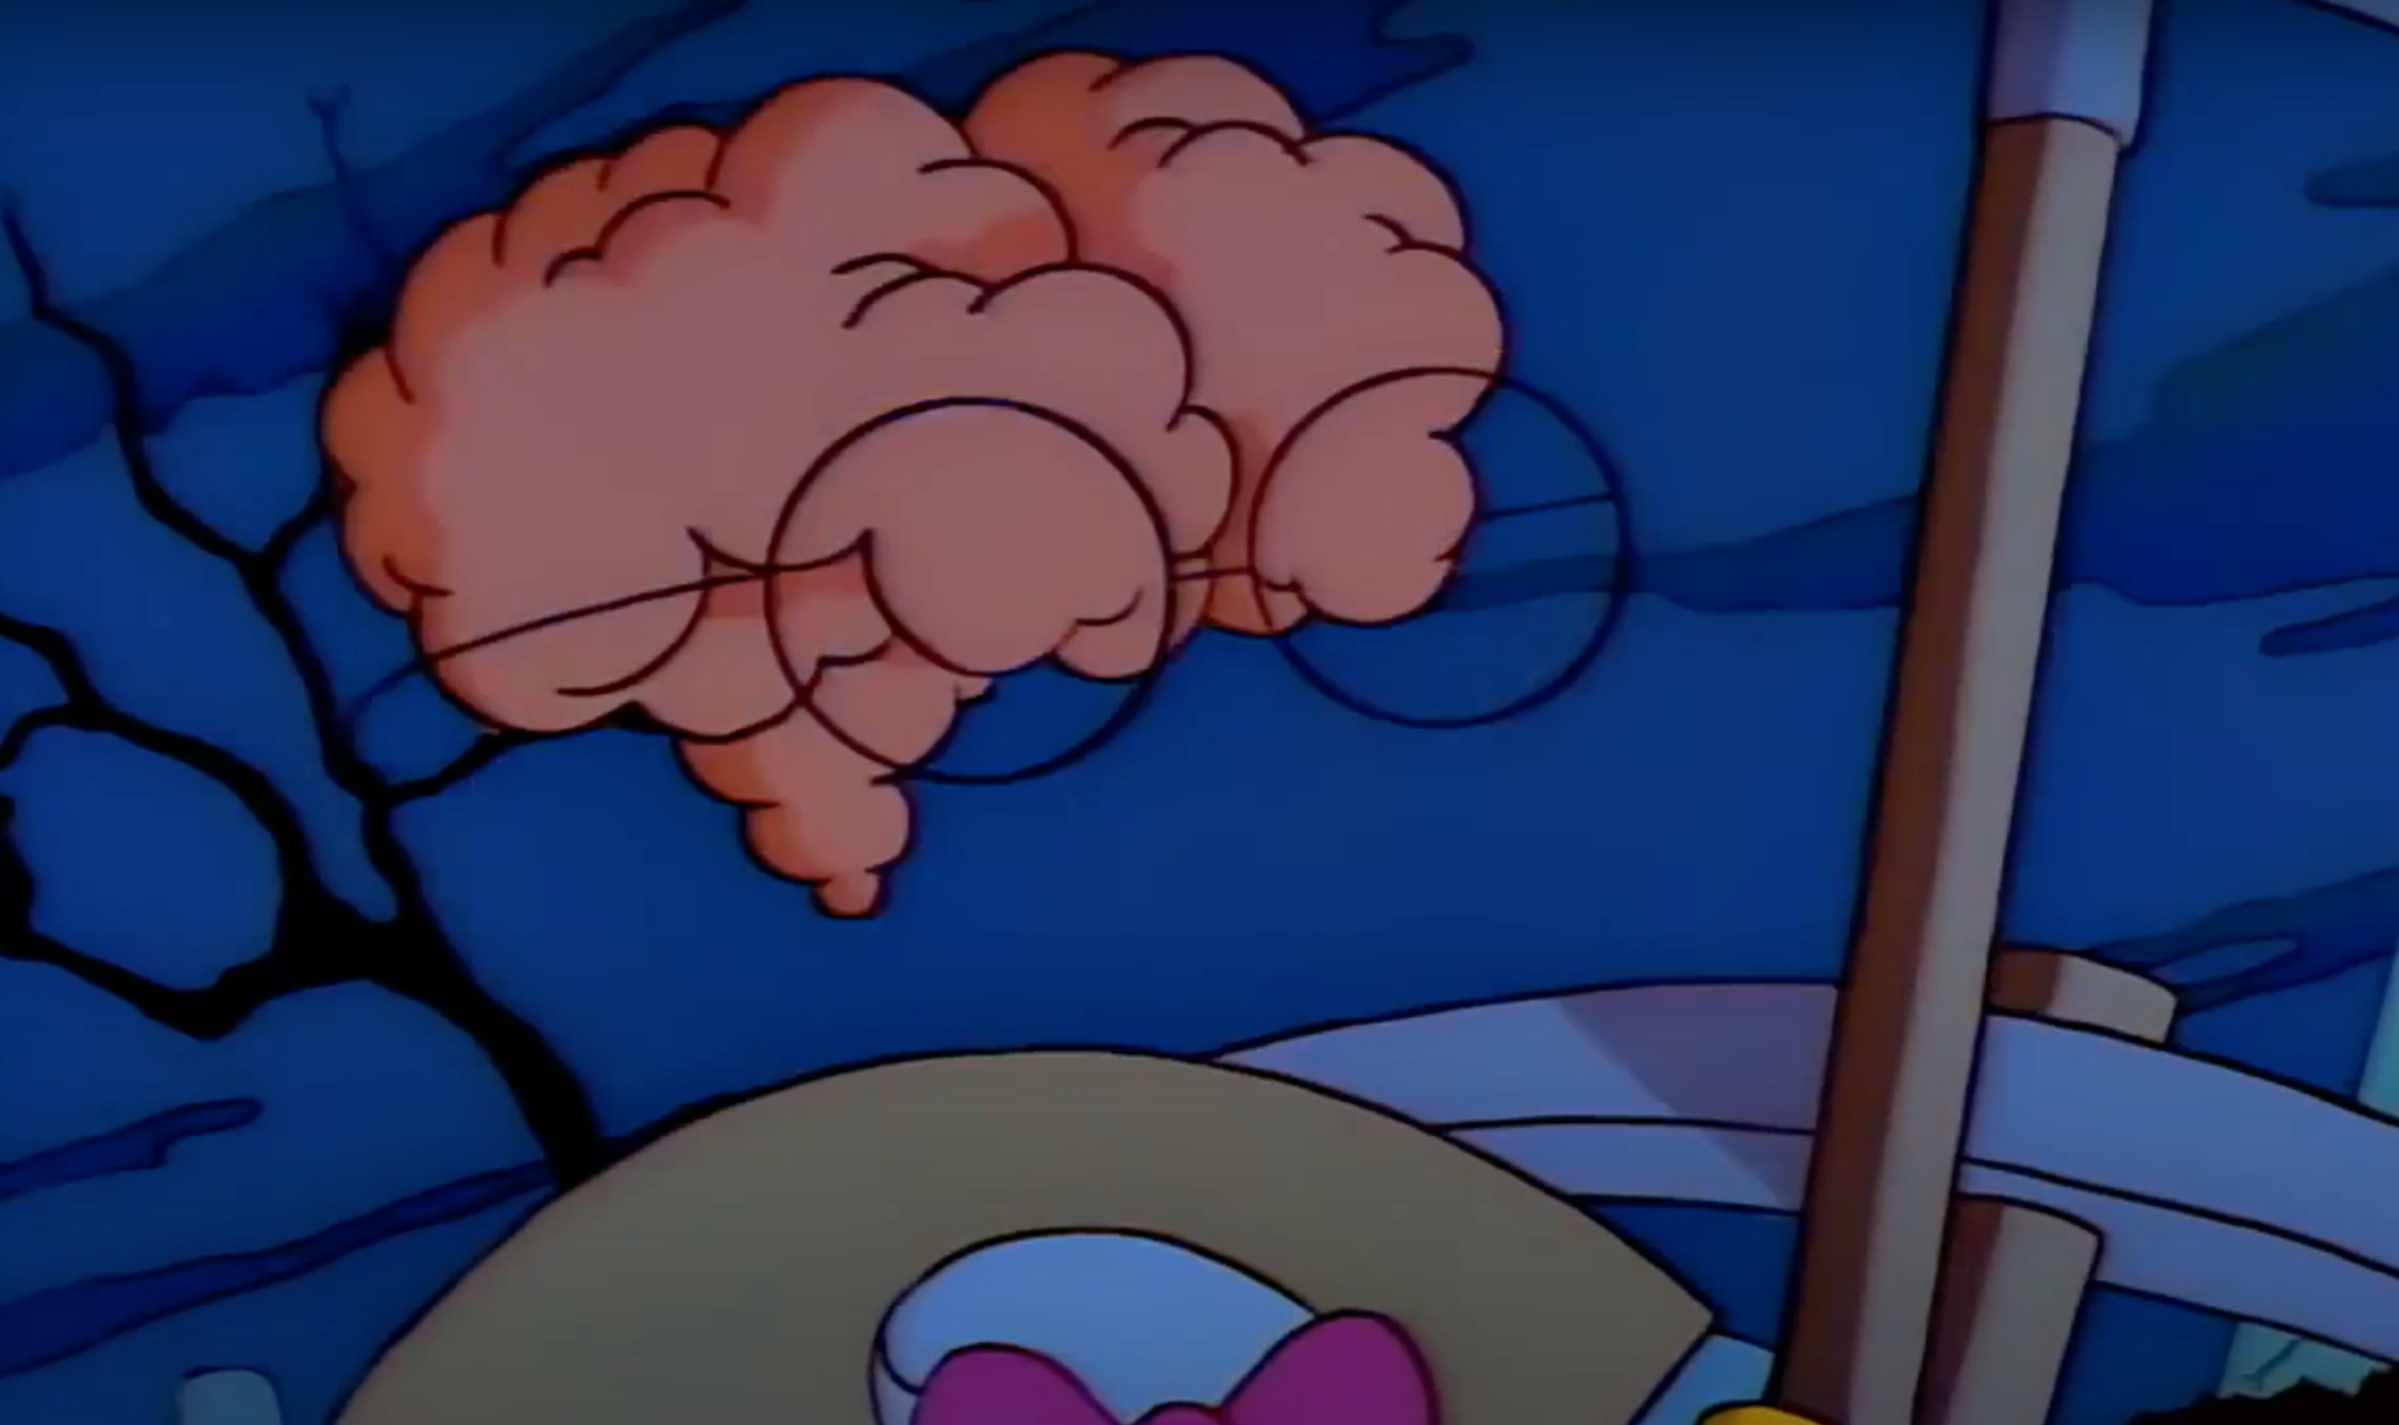 A view of the brain of Waylon Smithers, from The Simpsons.